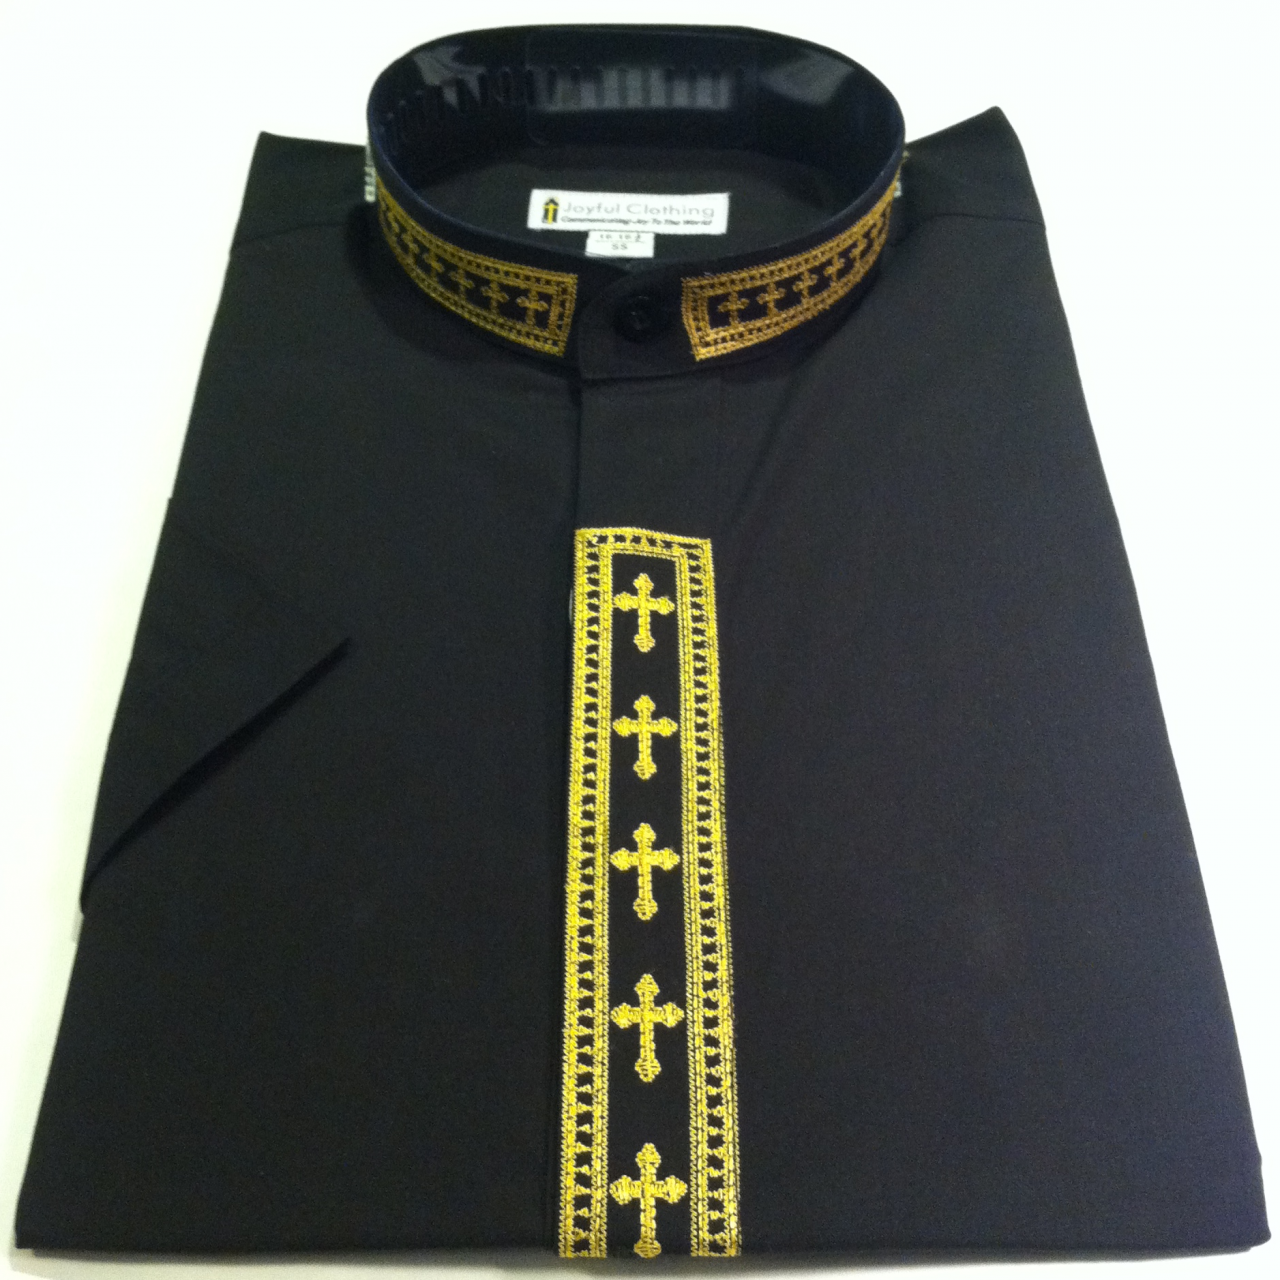 356. Men's Short-Sleeve Clergy Shirt With Fine Embroidery - Black/Gold